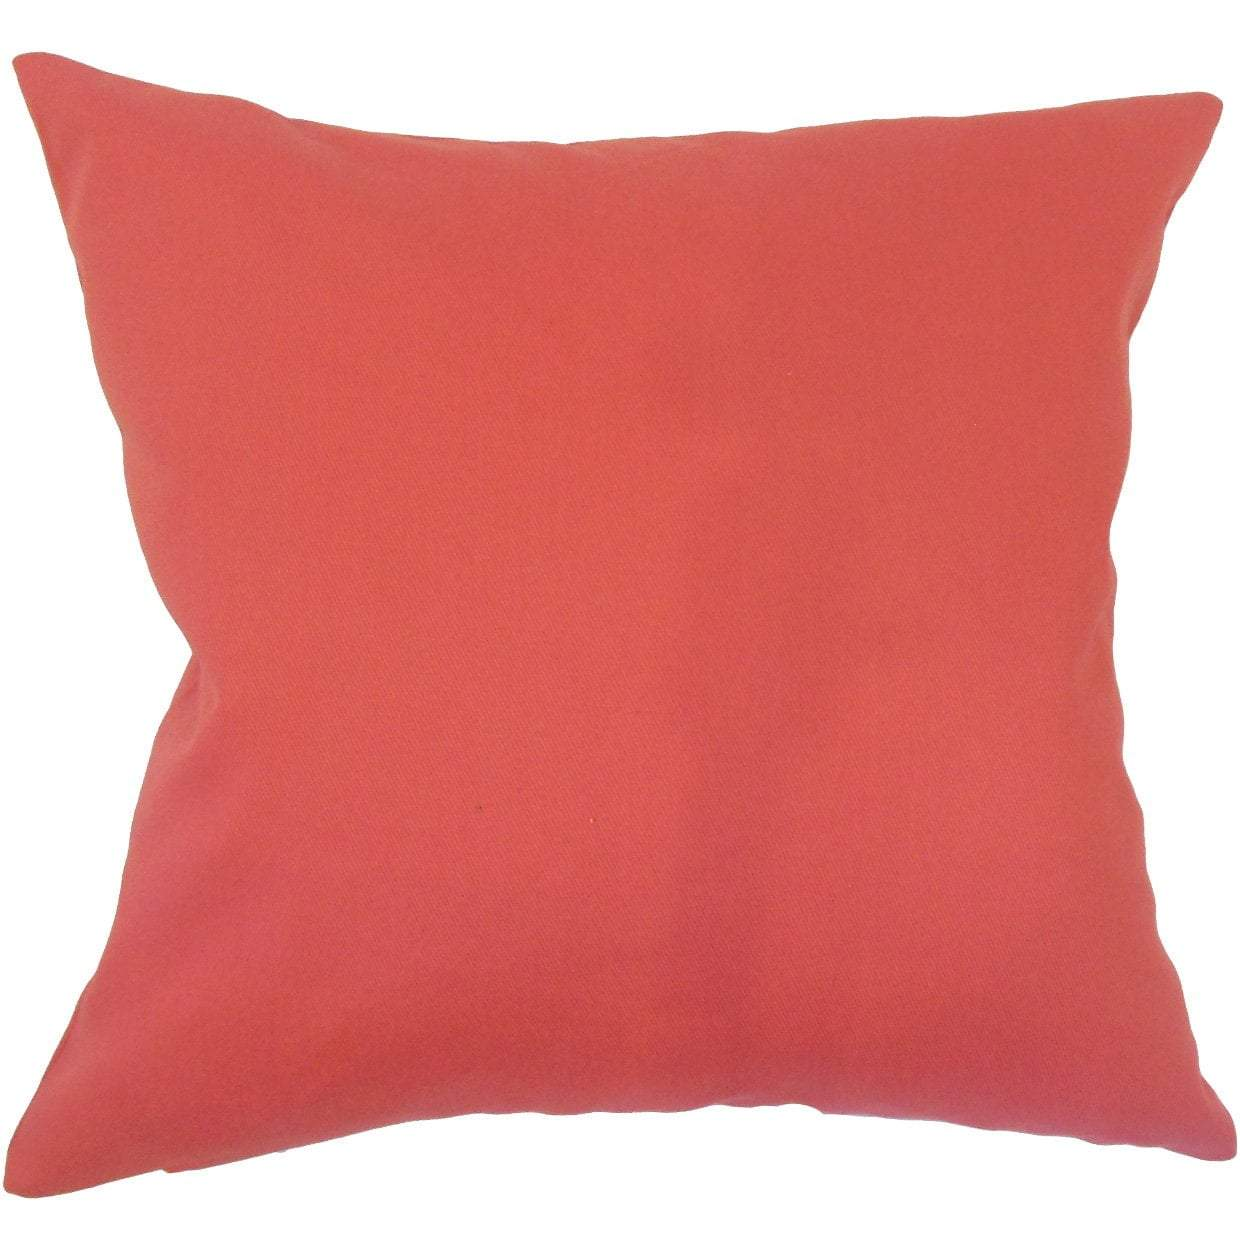 Red Cotton Solid Contemporary Throw Pillow Cover